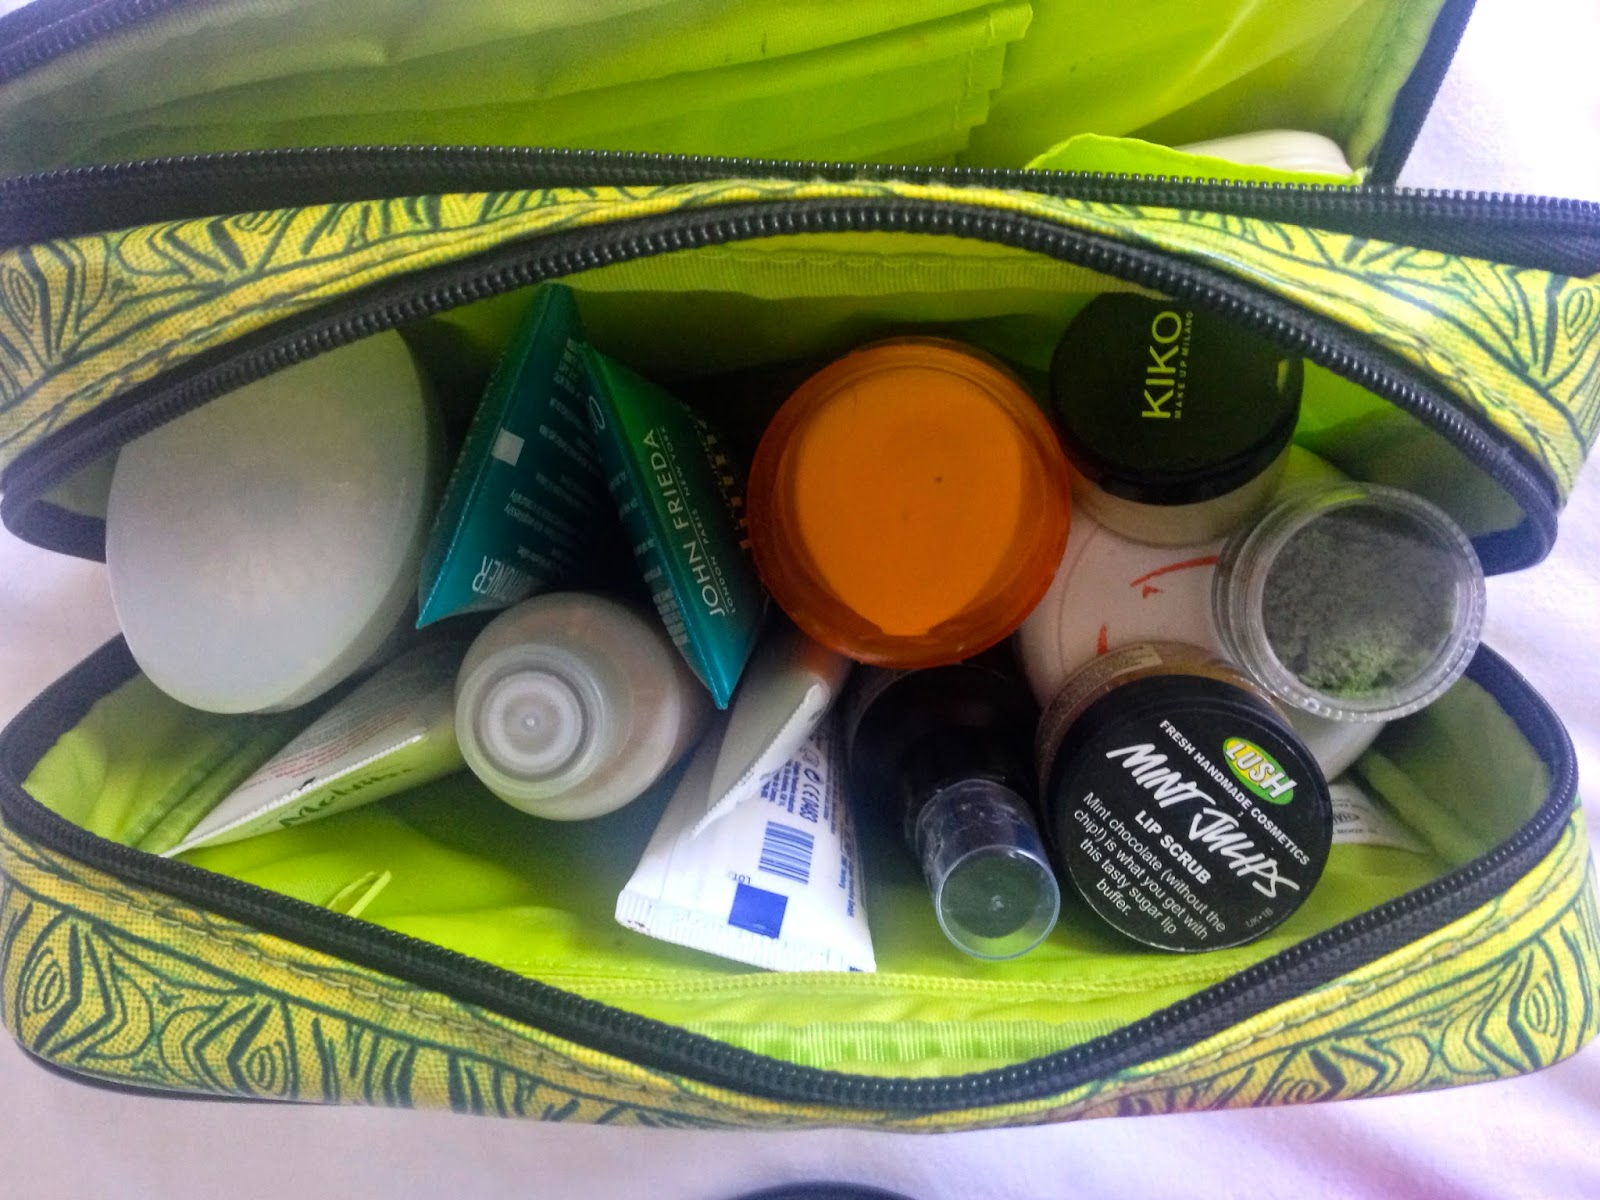 a picture of What's in my wash bag